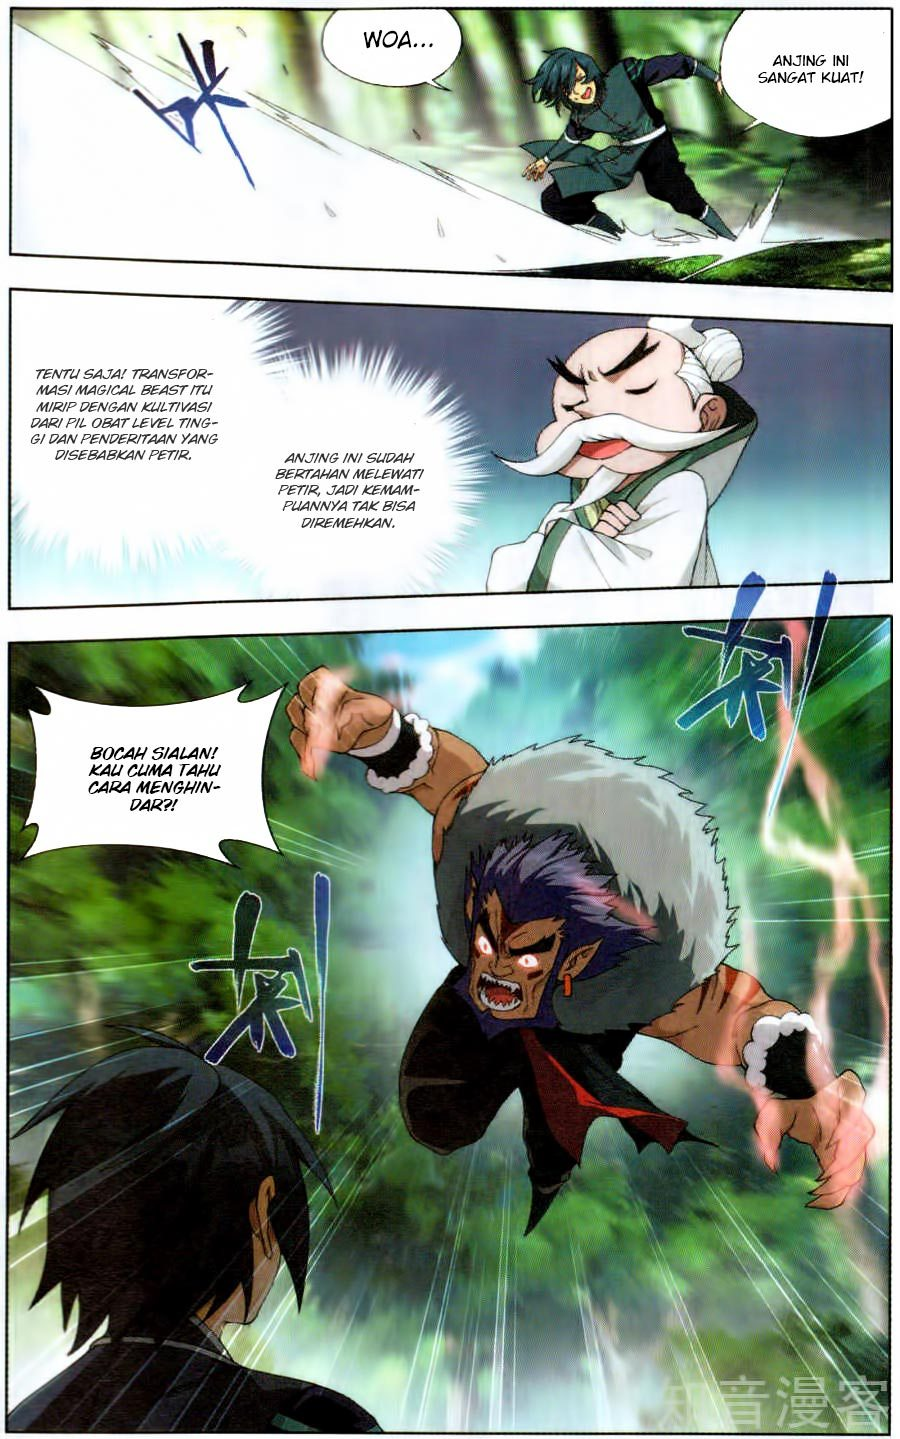 Dilarang COPAS - situs resmi www.mangacanblog.com - Komik battle through heaven 231 - chapter 231 232 Indonesia battle through heaven 231 - chapter 231 Terbaru 8|Baca Manga Komik Indonesia|Mangacan